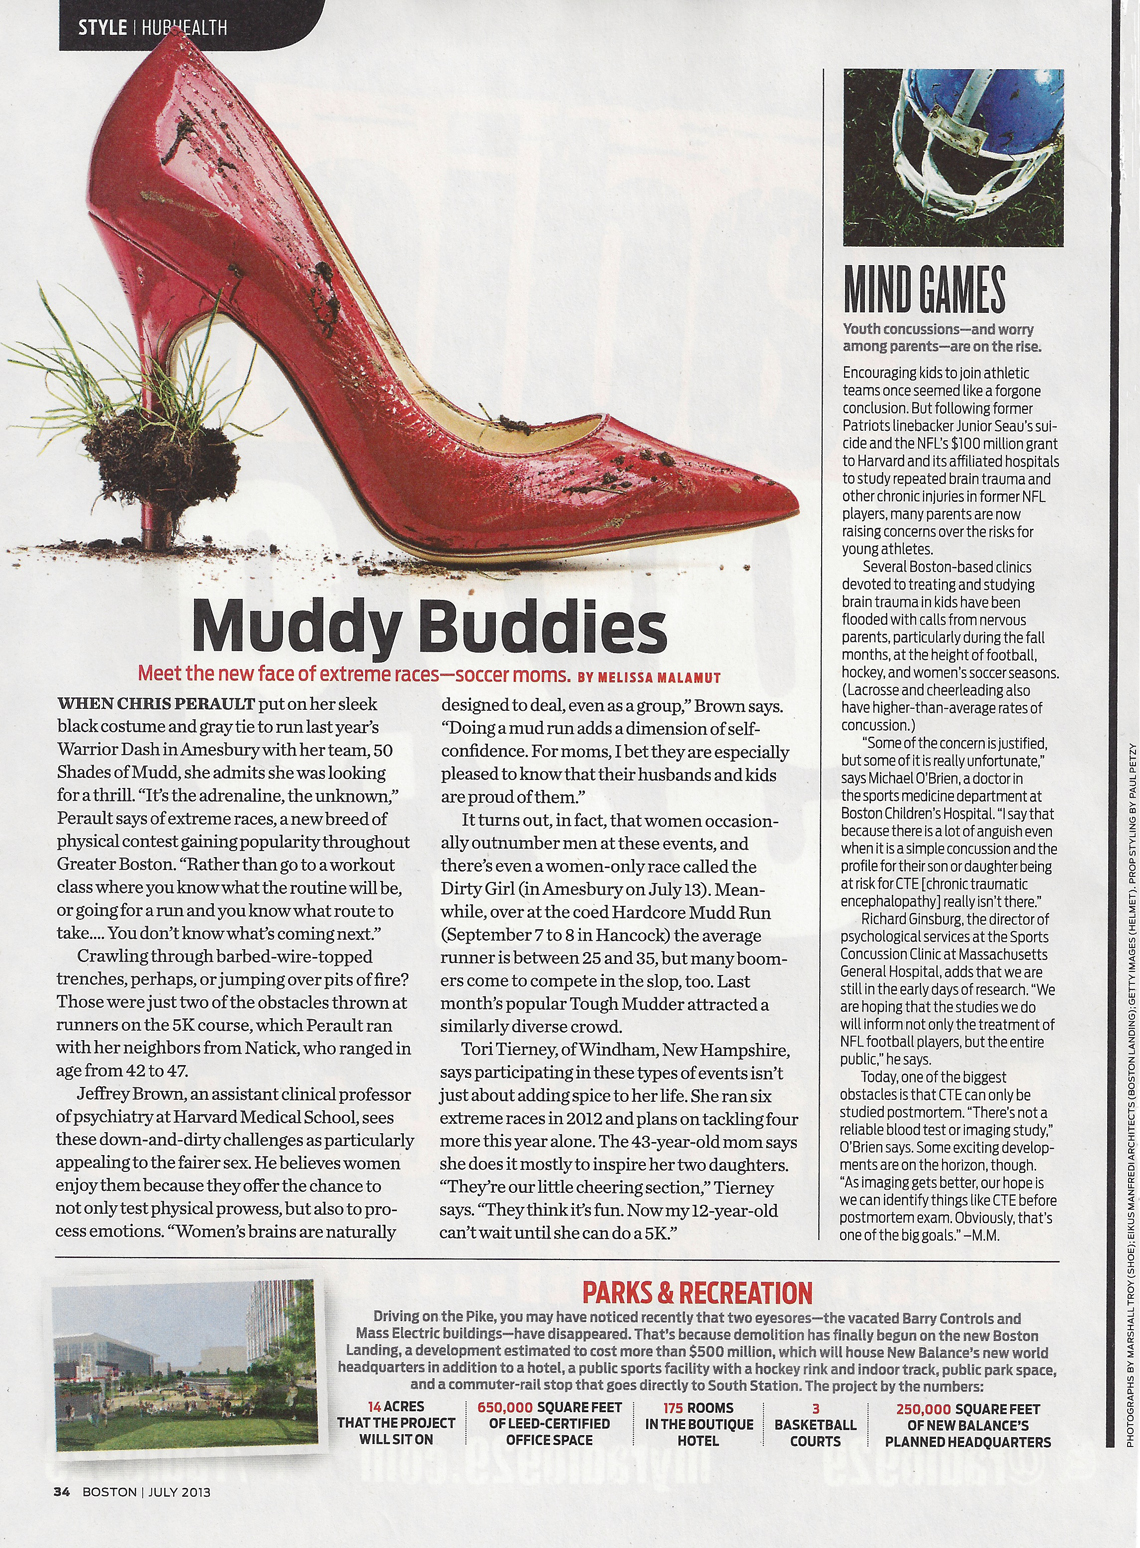 Boston Magazine - Muddy Buddies